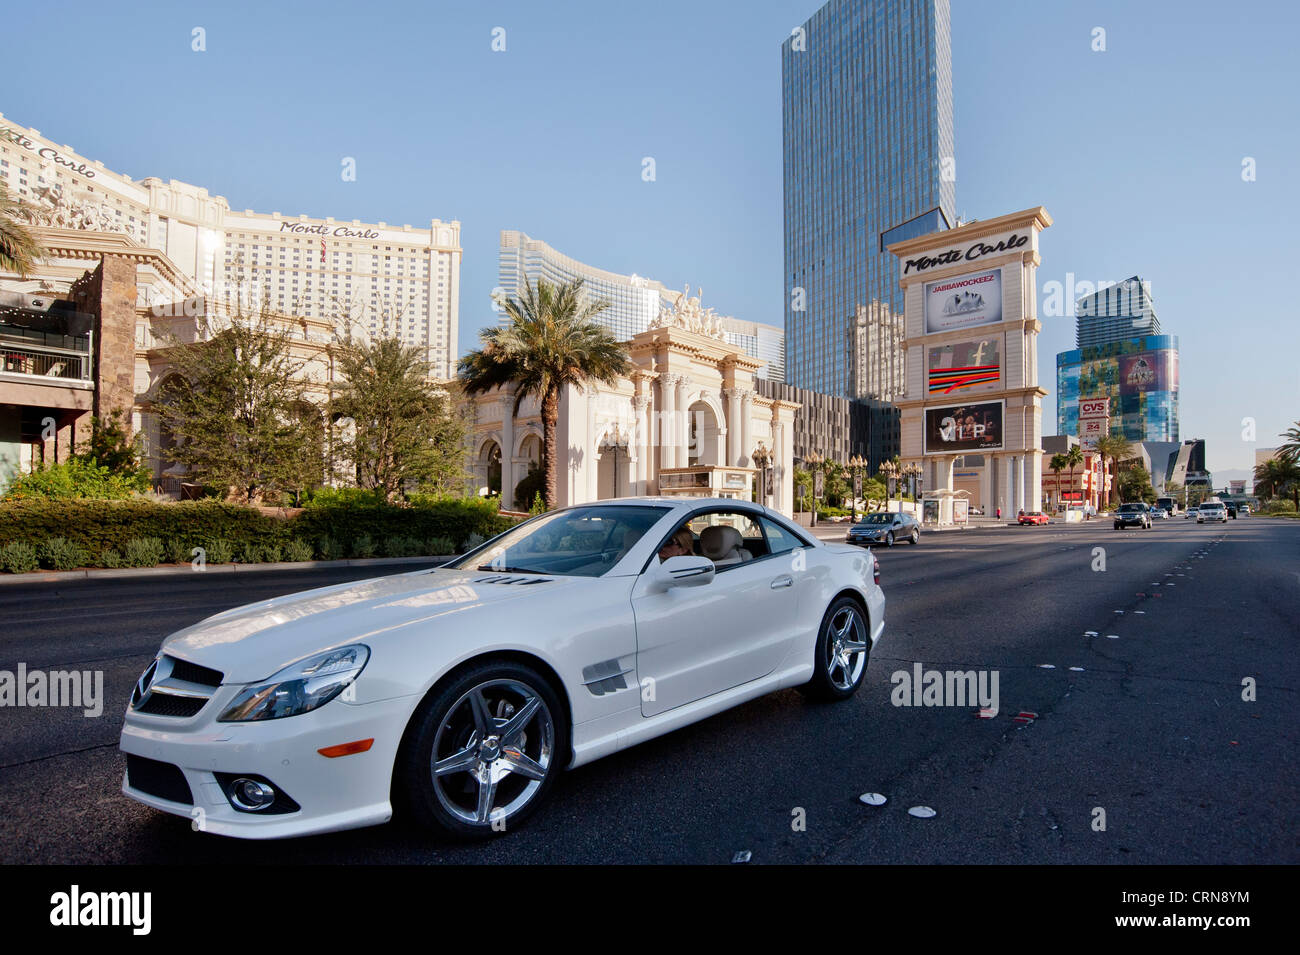 mercedes benz sports car in front of monte carlo hotel on